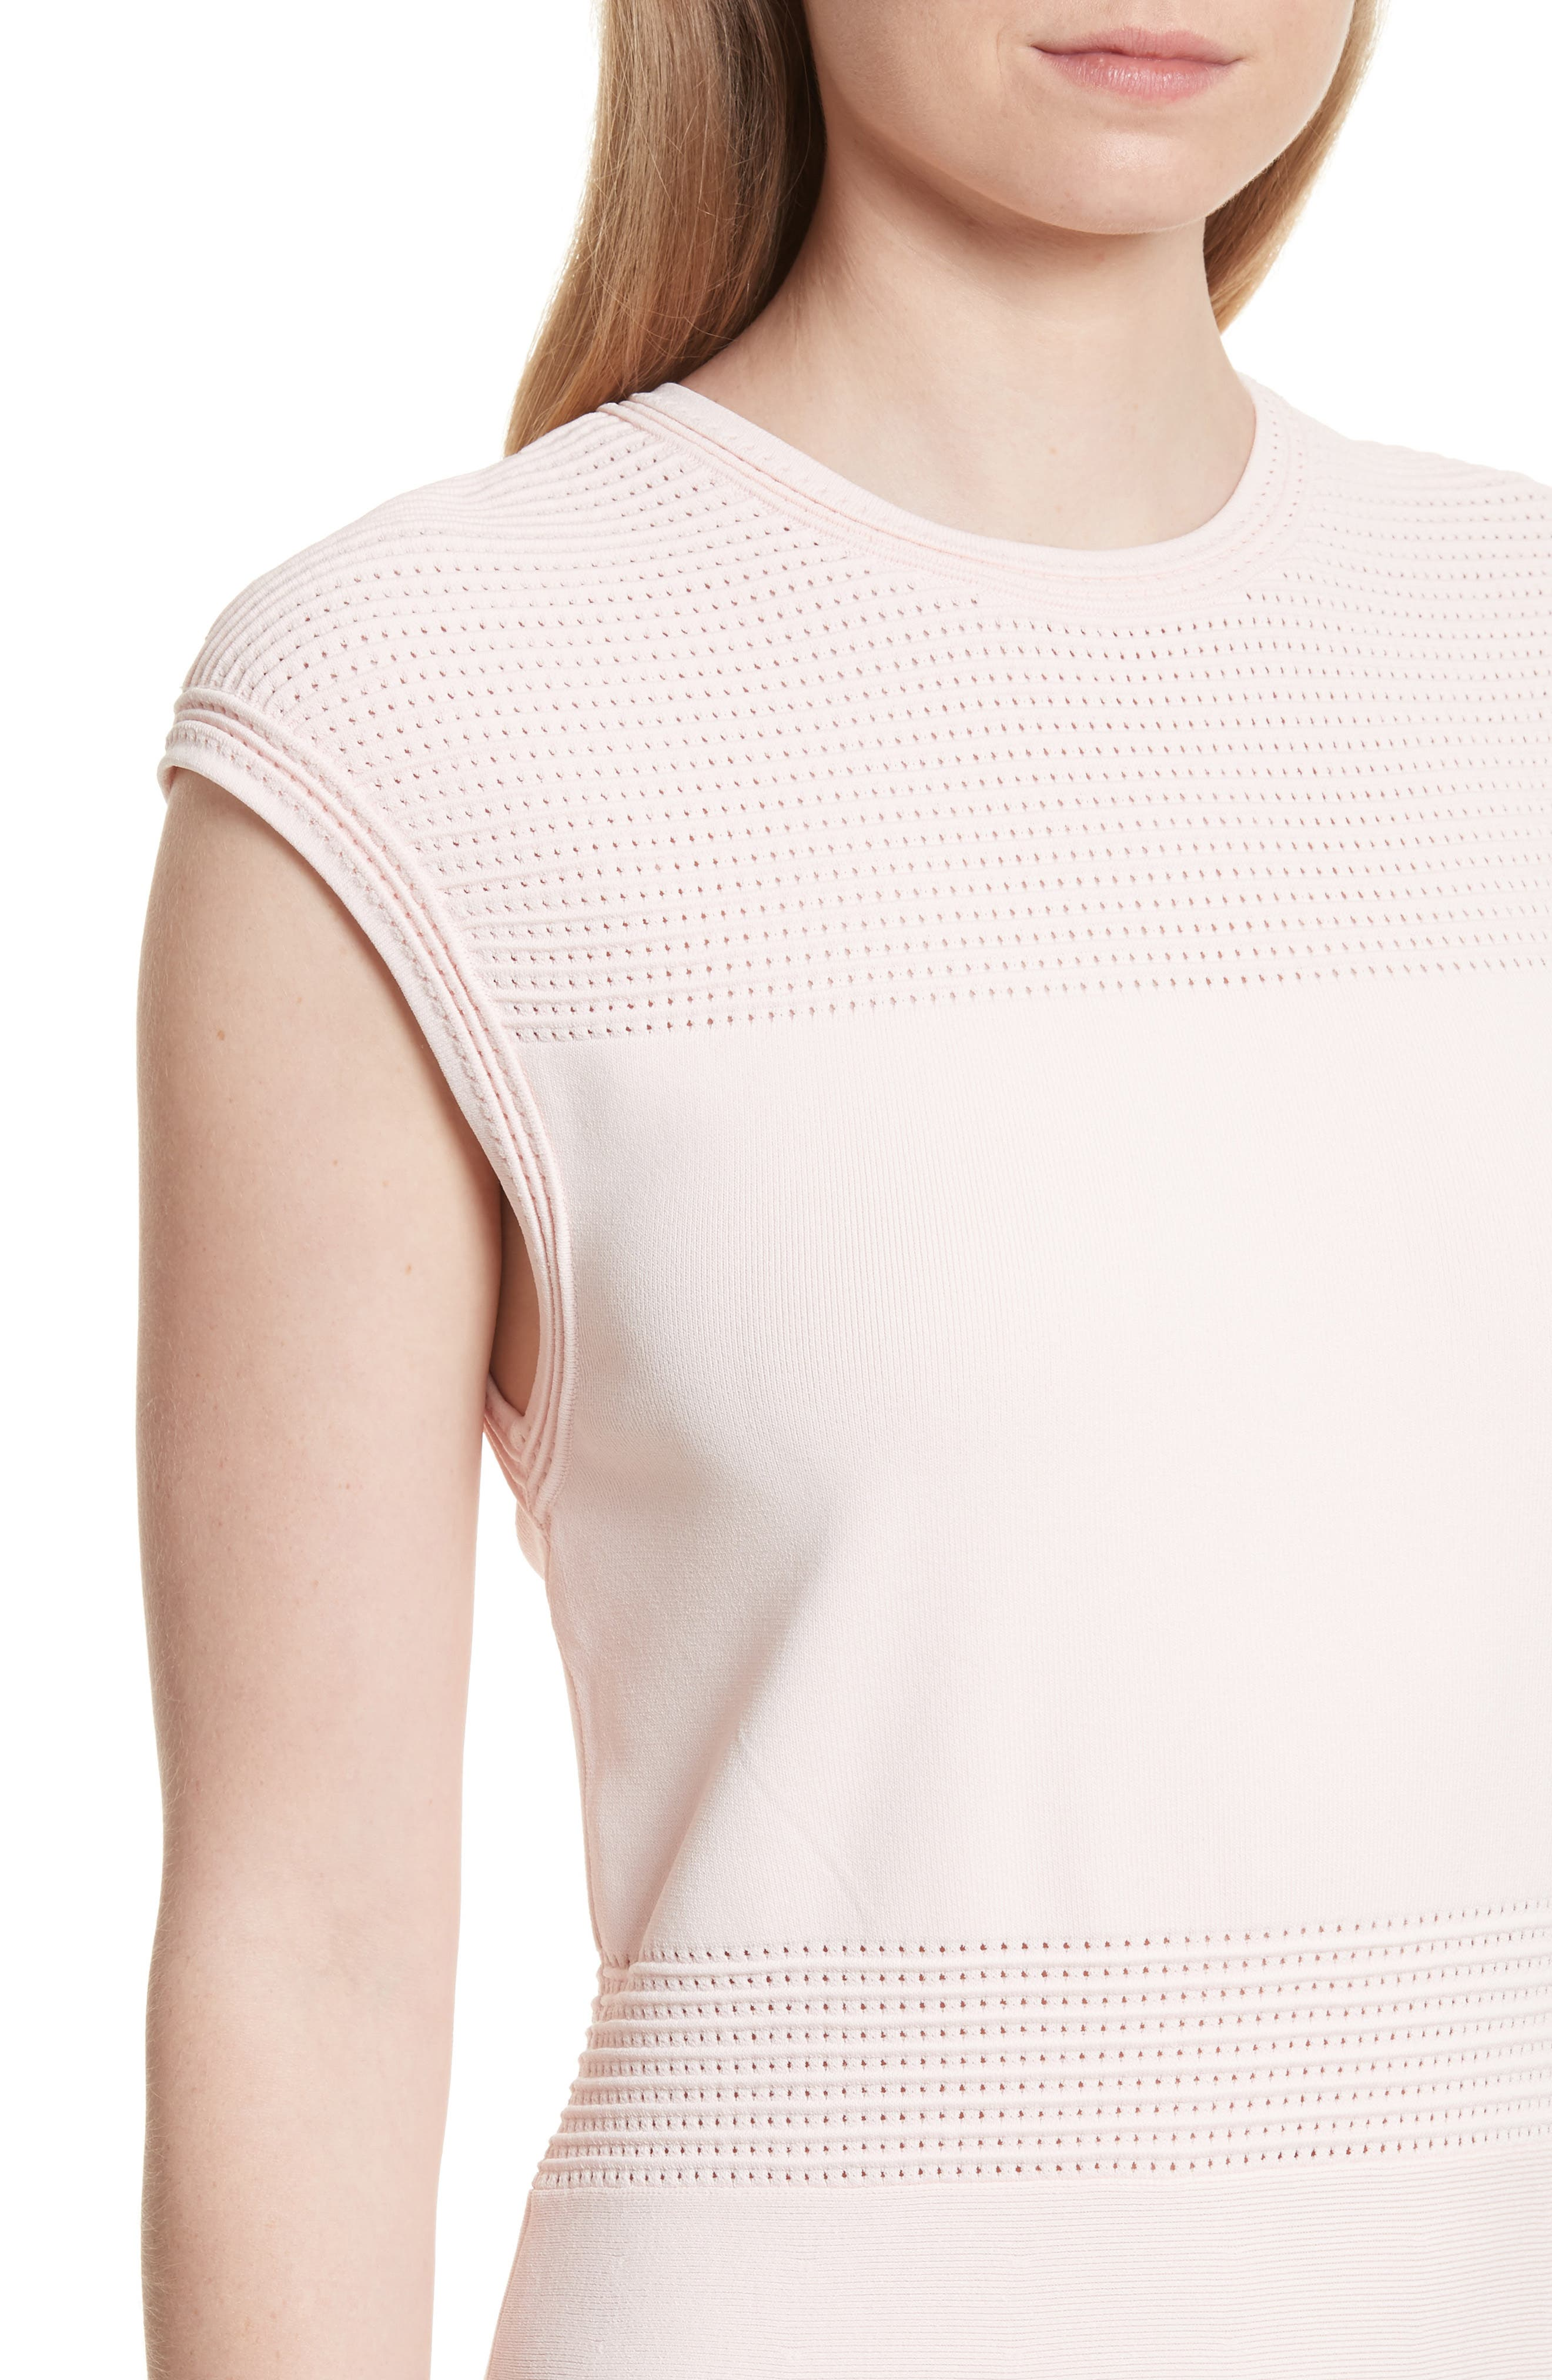 Aurbray Knit Skater Dress,                             Alternate thumbnail 4, color,                             Nude Pink